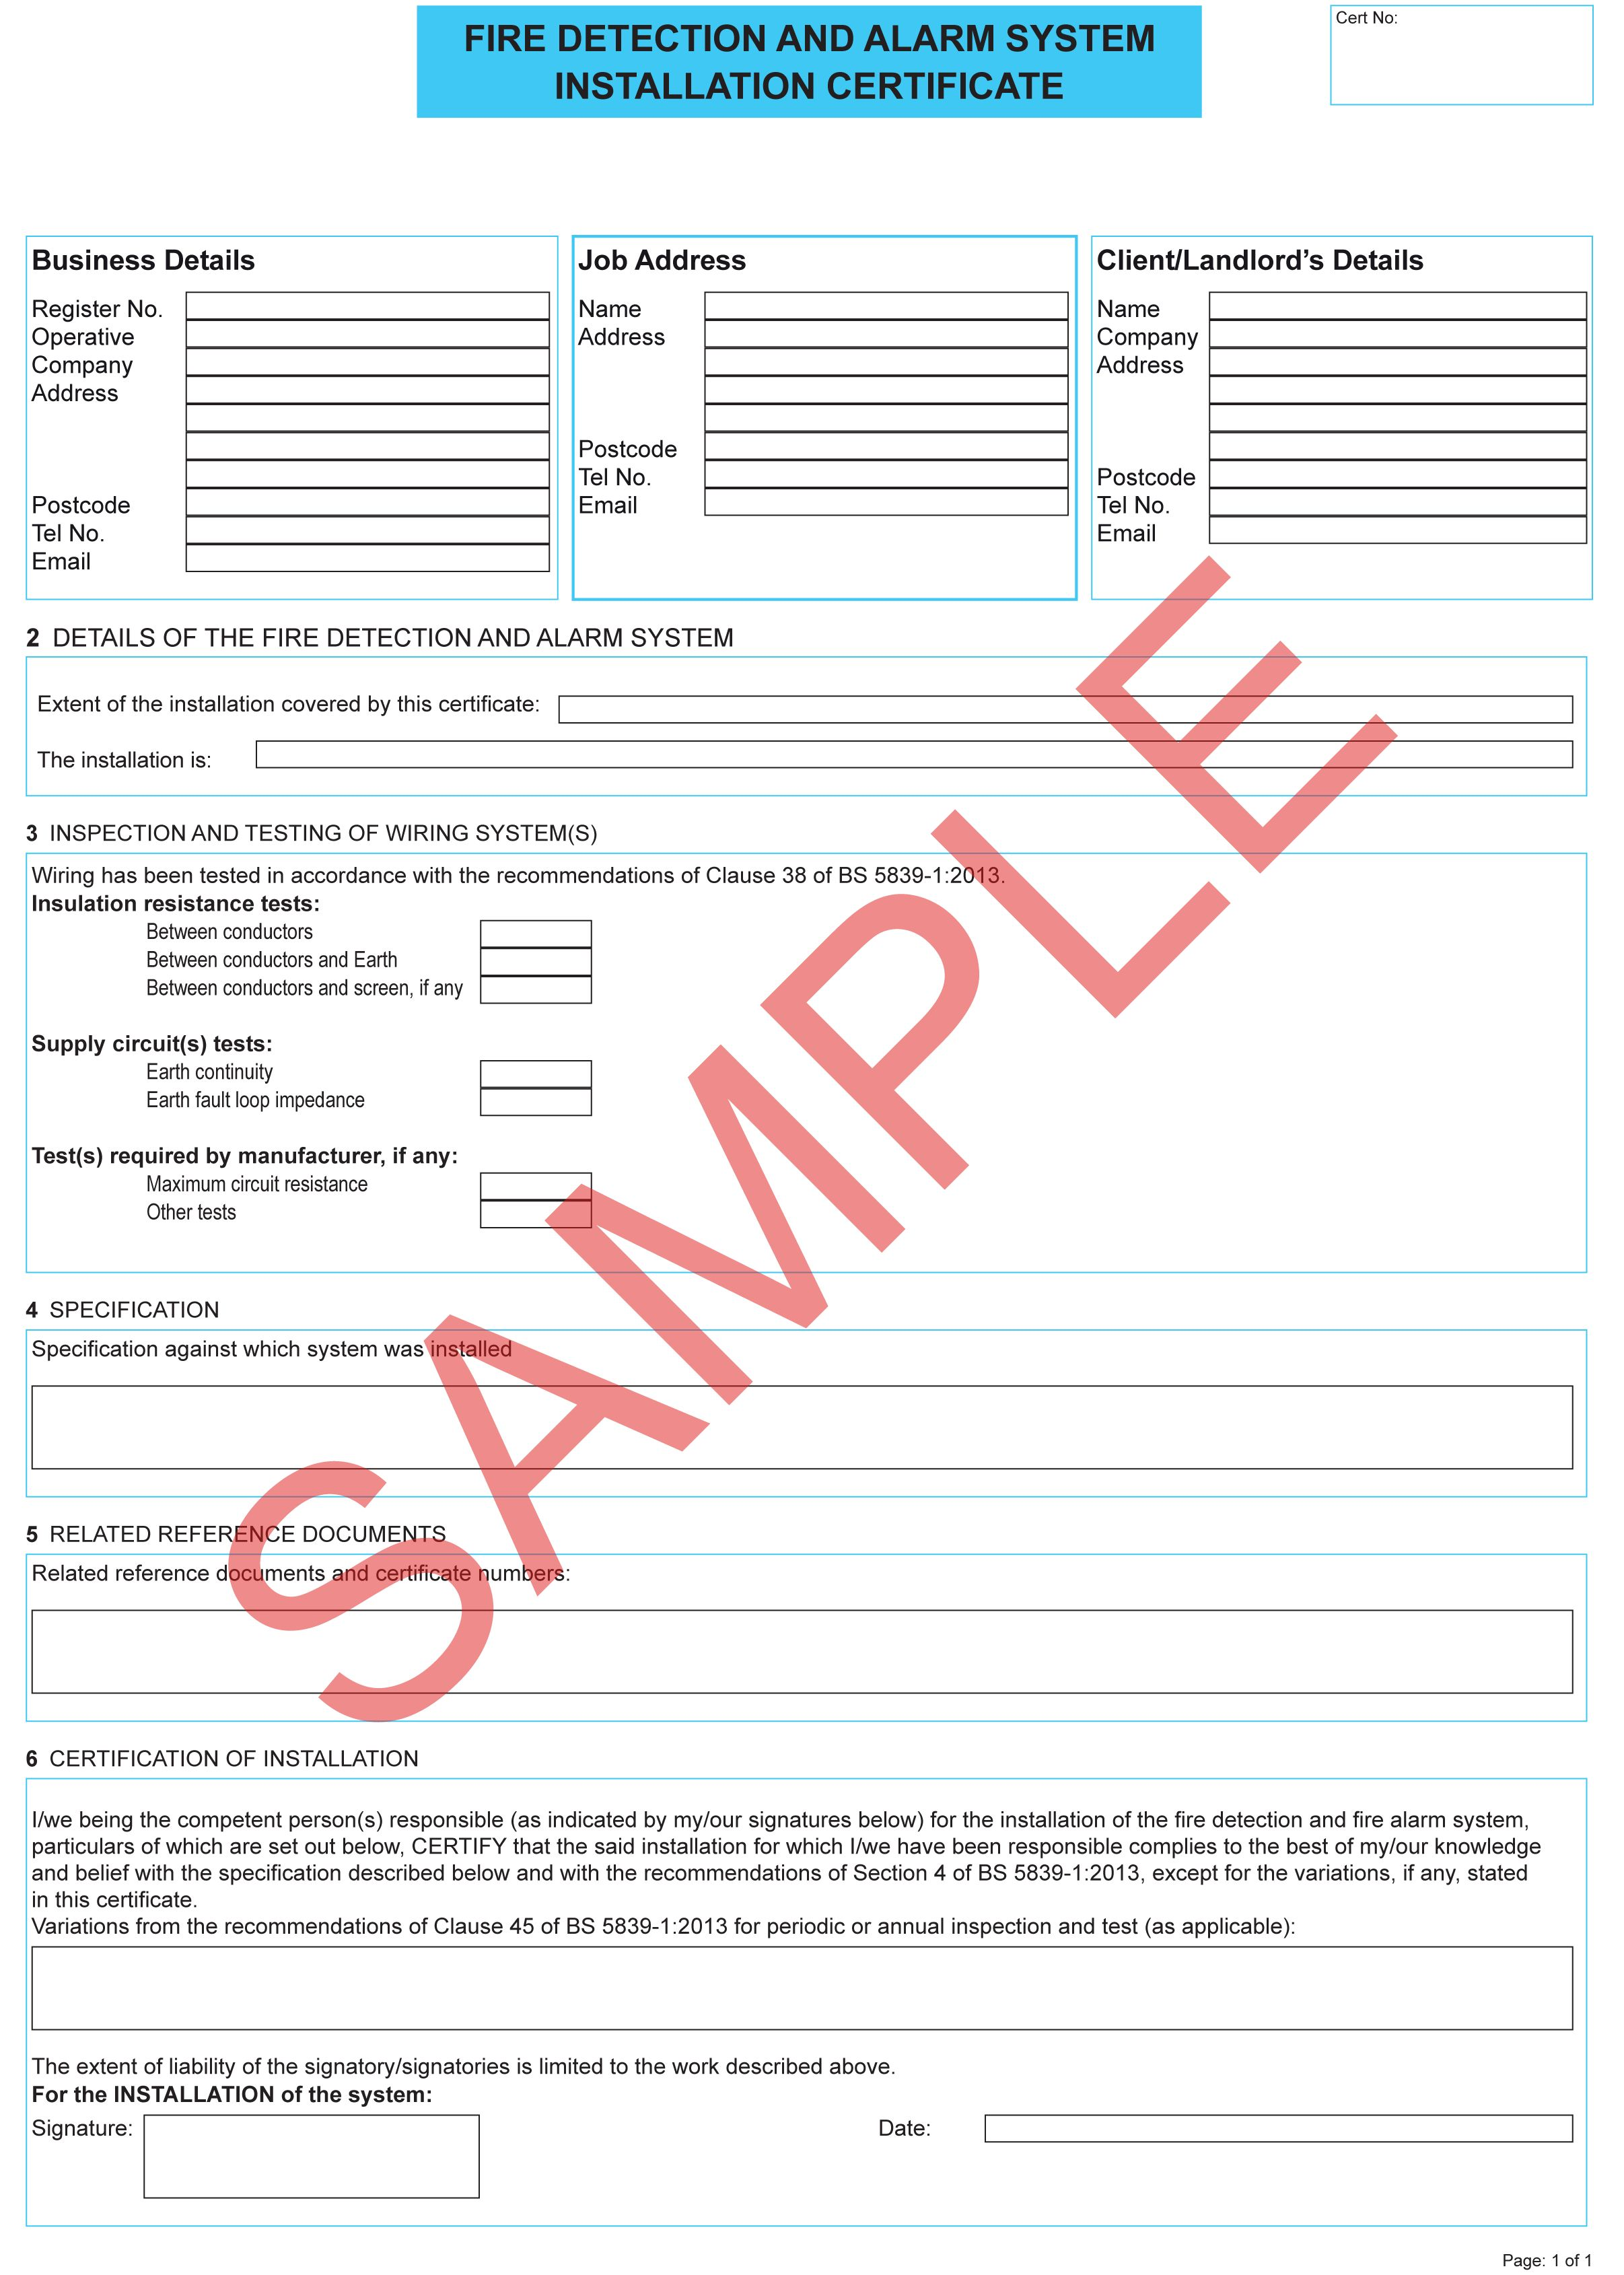 Certificates Everycert Throughout Electrical Installation Test Certificate Template 10 Professional T In 2020 Certificate Templates Professional Templates Templates